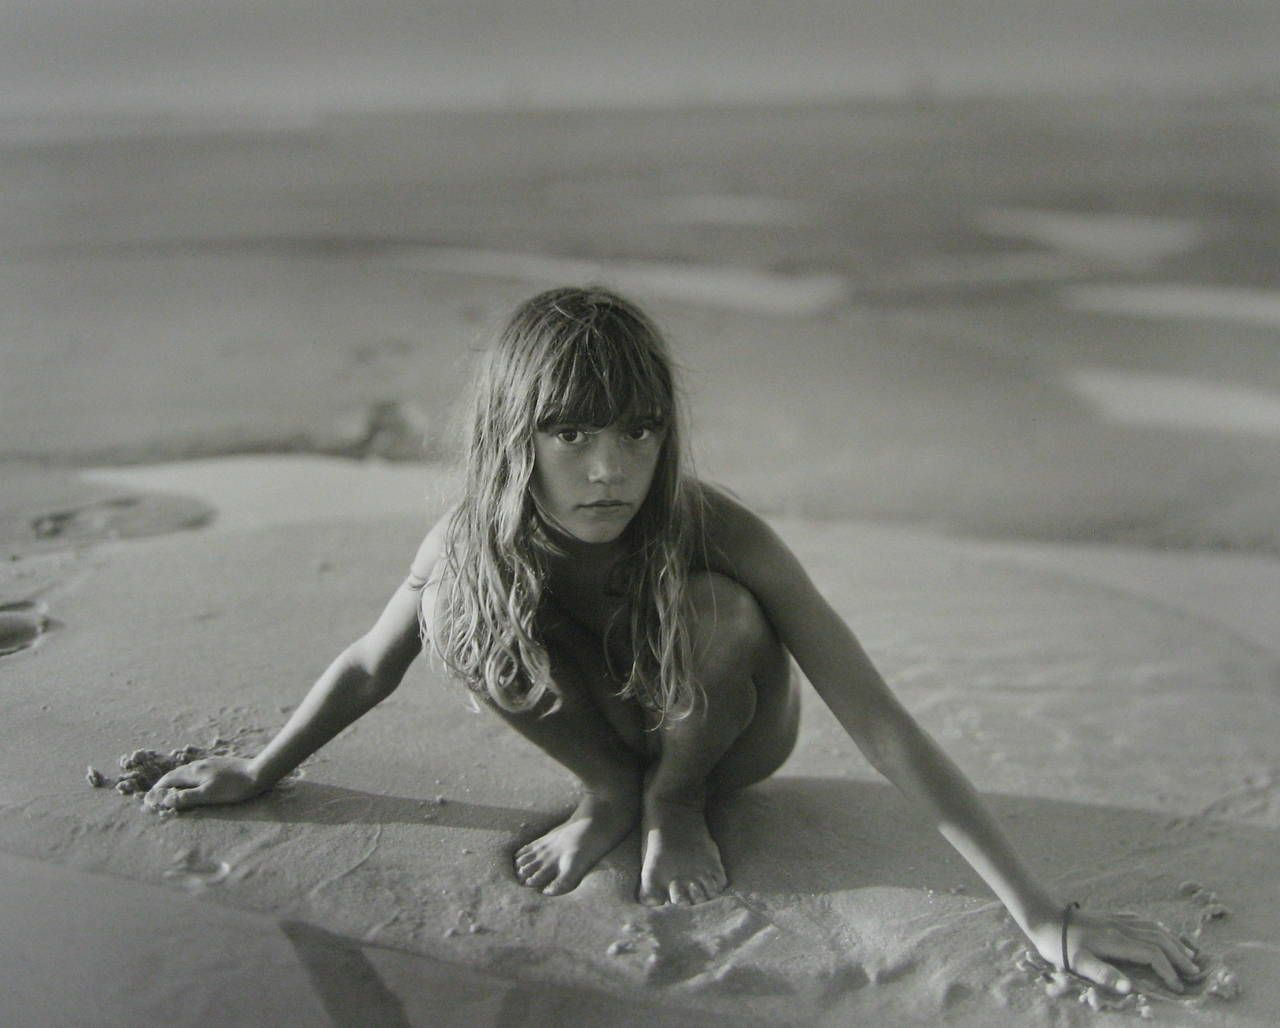 JOCK STURGES  17 Best images about Jock sturges on Pinterest | Girl on beach, Amsterdam  and Black and white photography